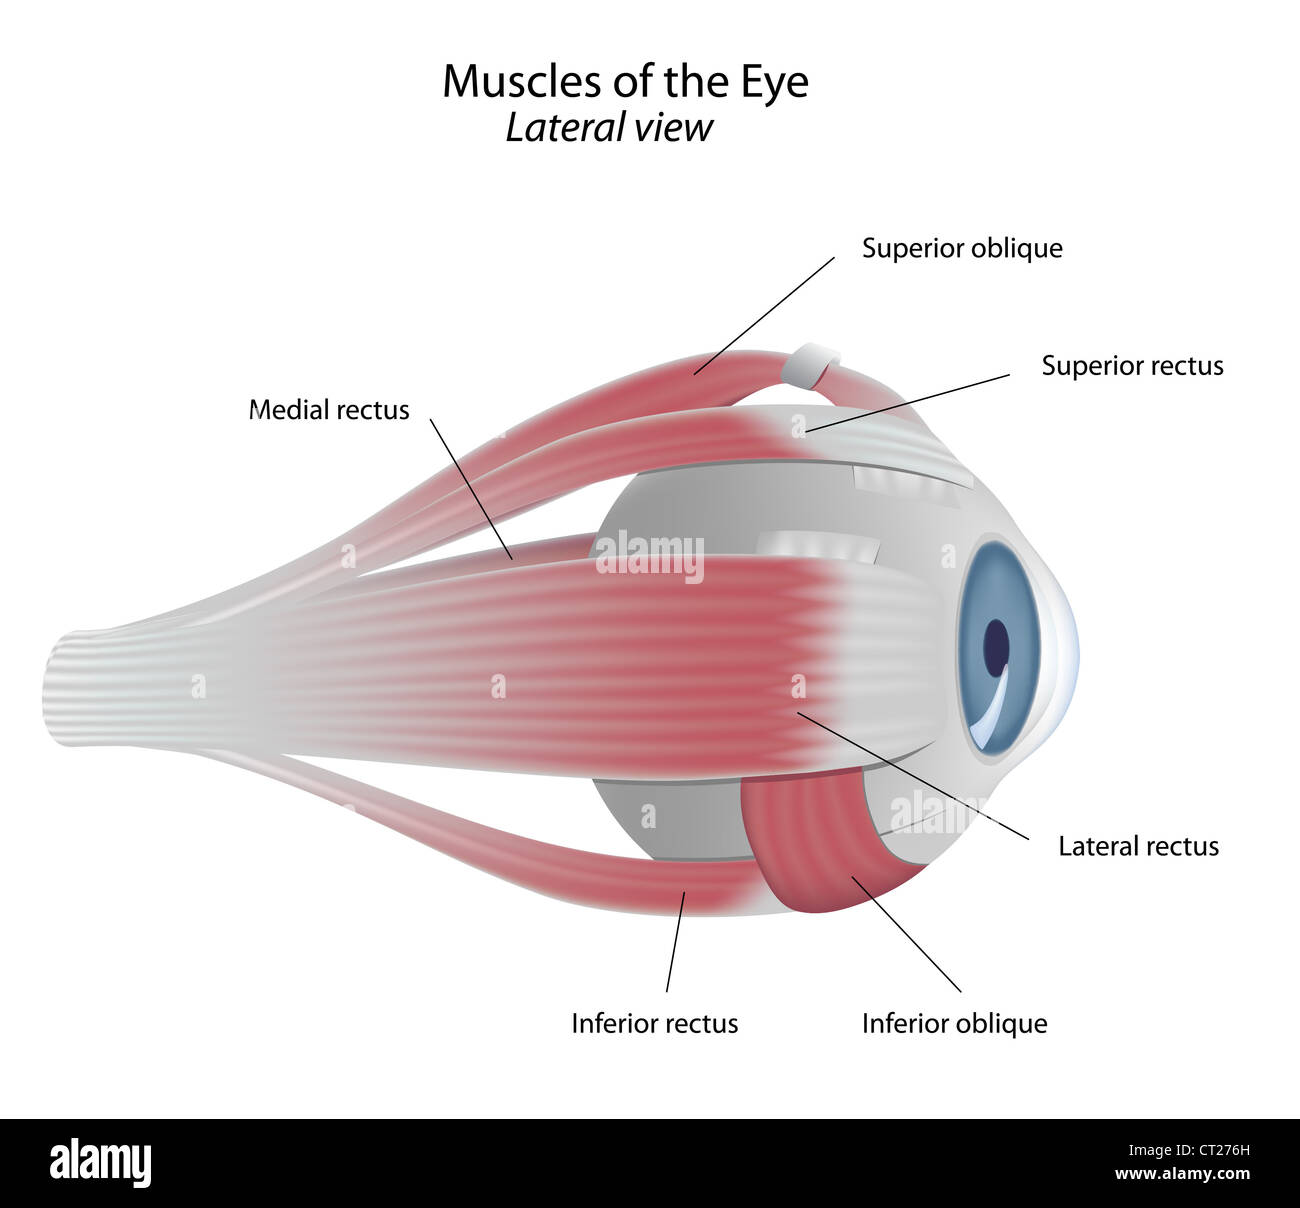 Lateral Rectus Muscle Stock Photos Lateral Rectus Muscle Stock